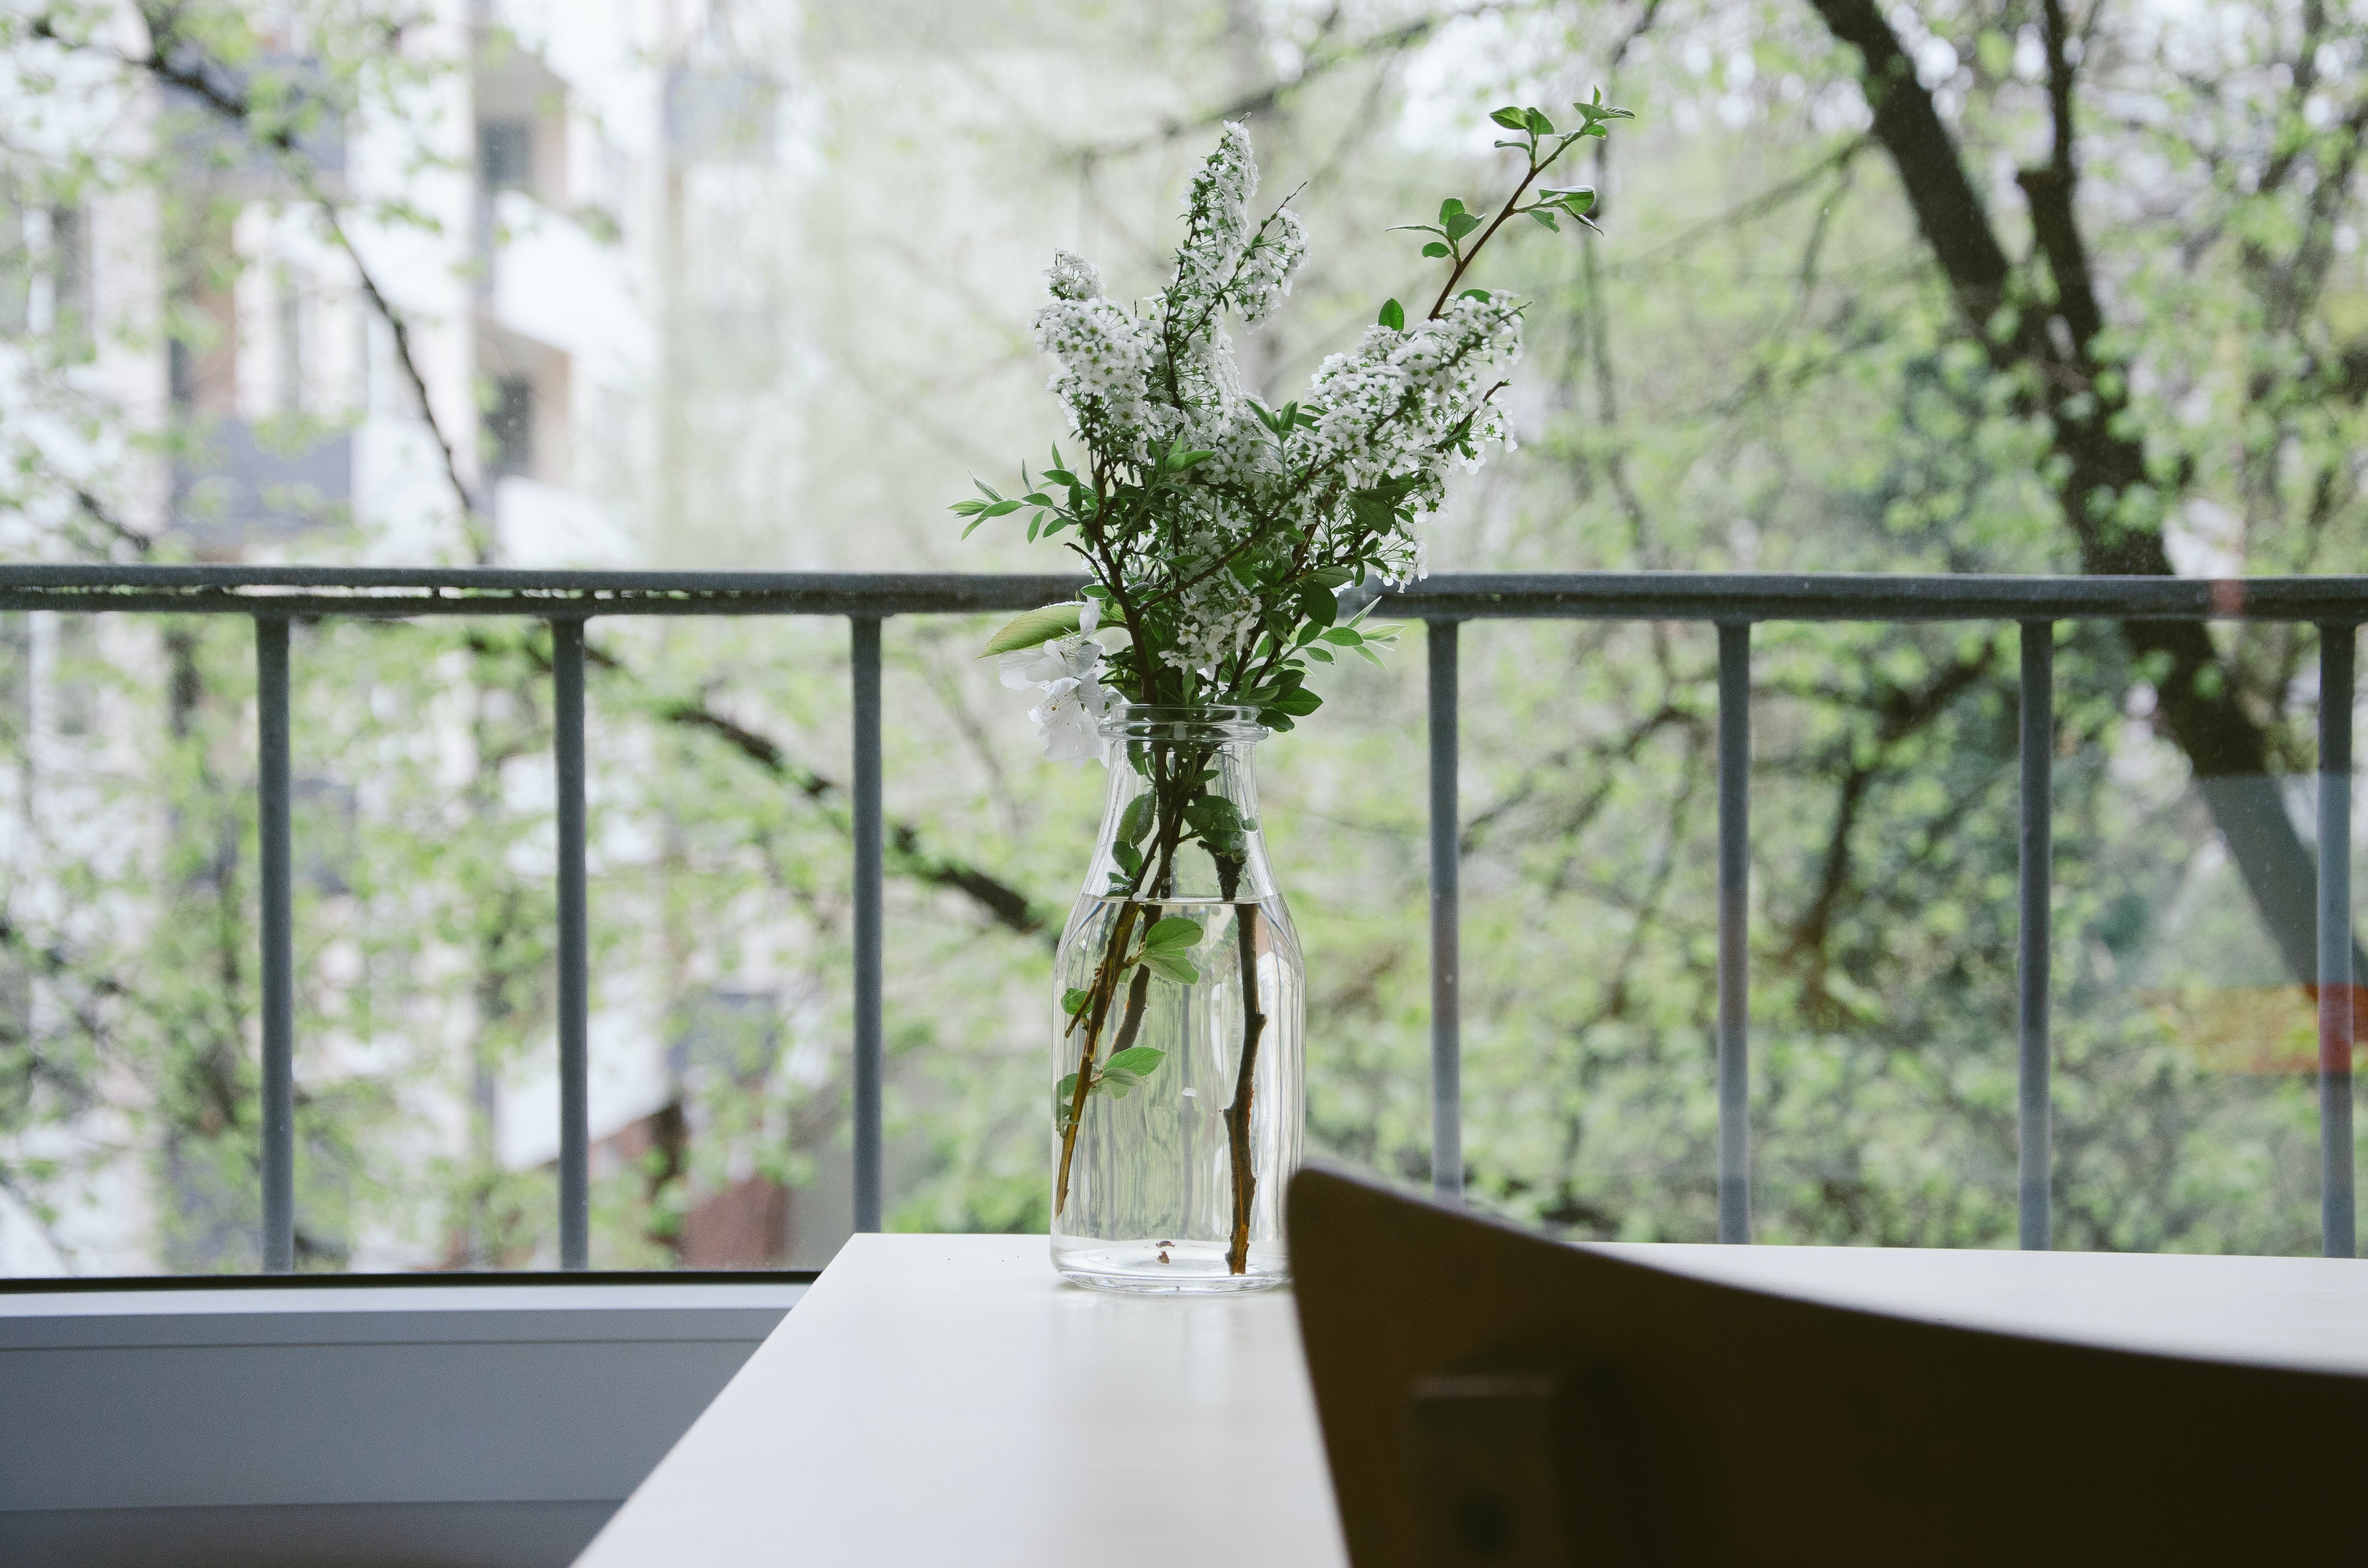 Green and white flowers in a transparent glass vase for interior decorations.